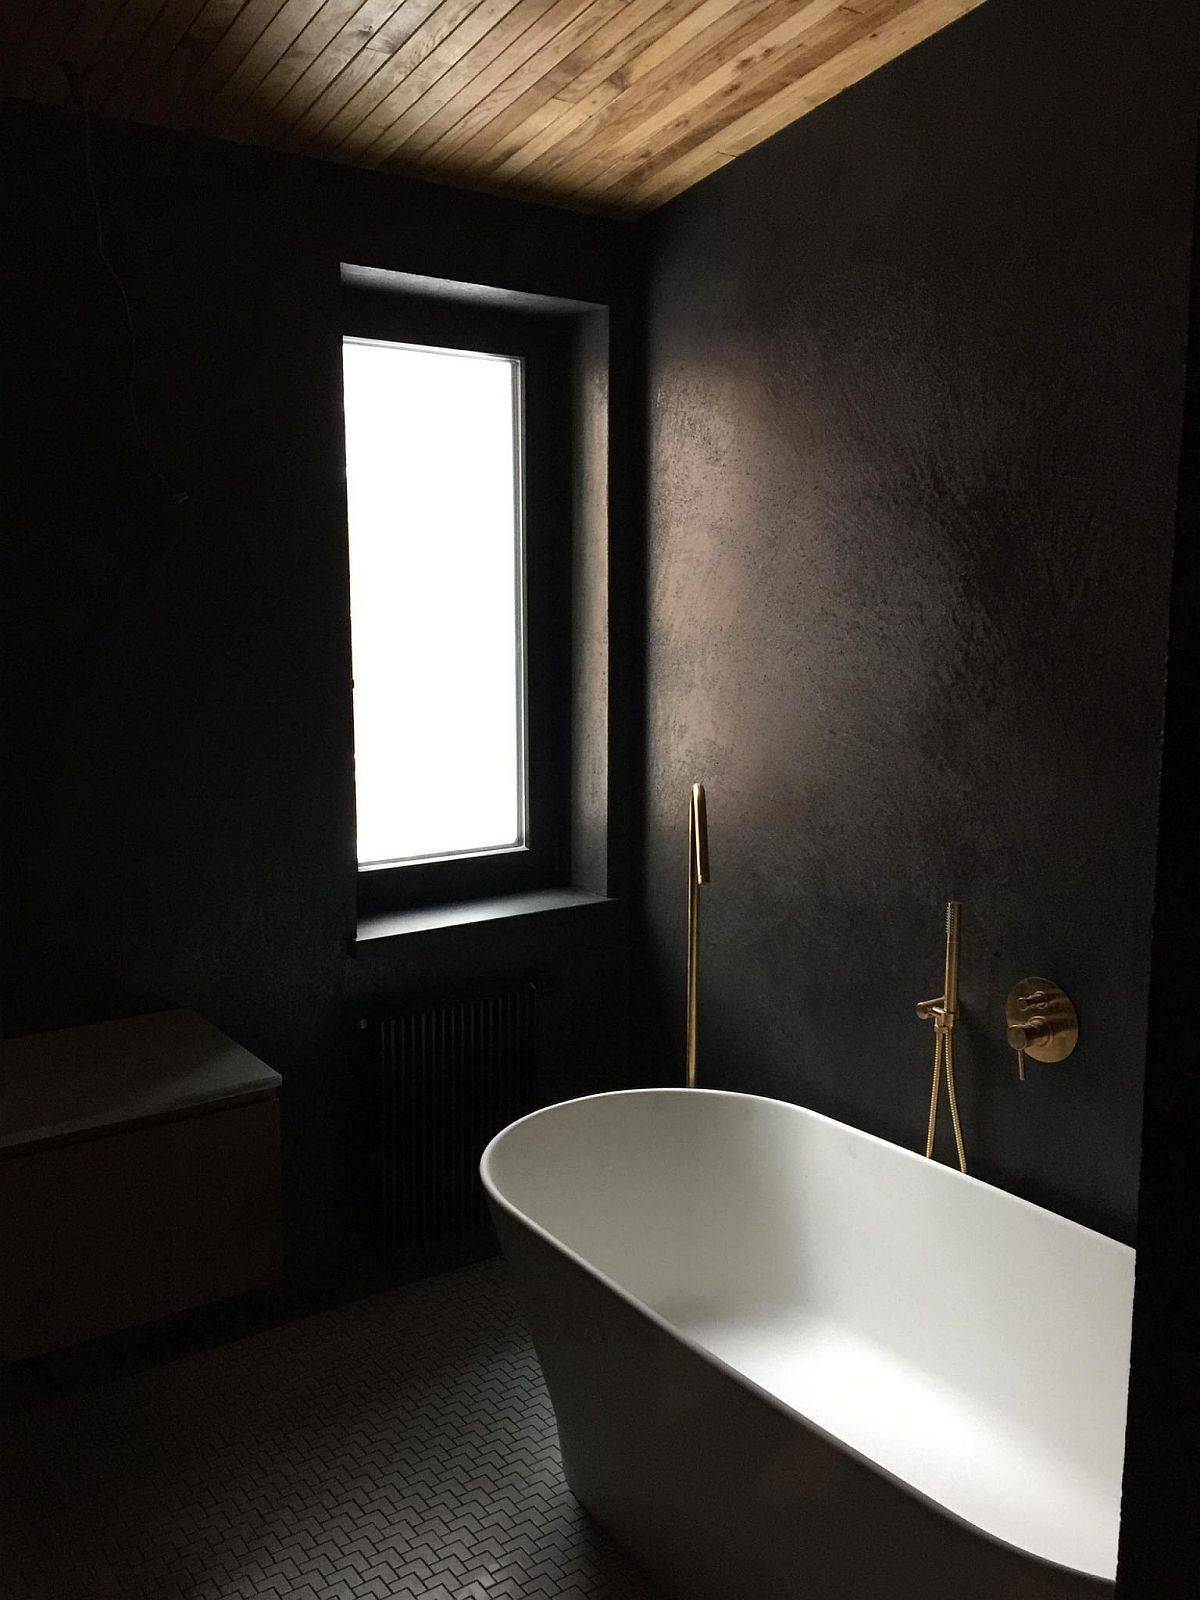 modern-bathroom-of-the-home-in-black-and-white-with-a-wooden-ceiling-26894